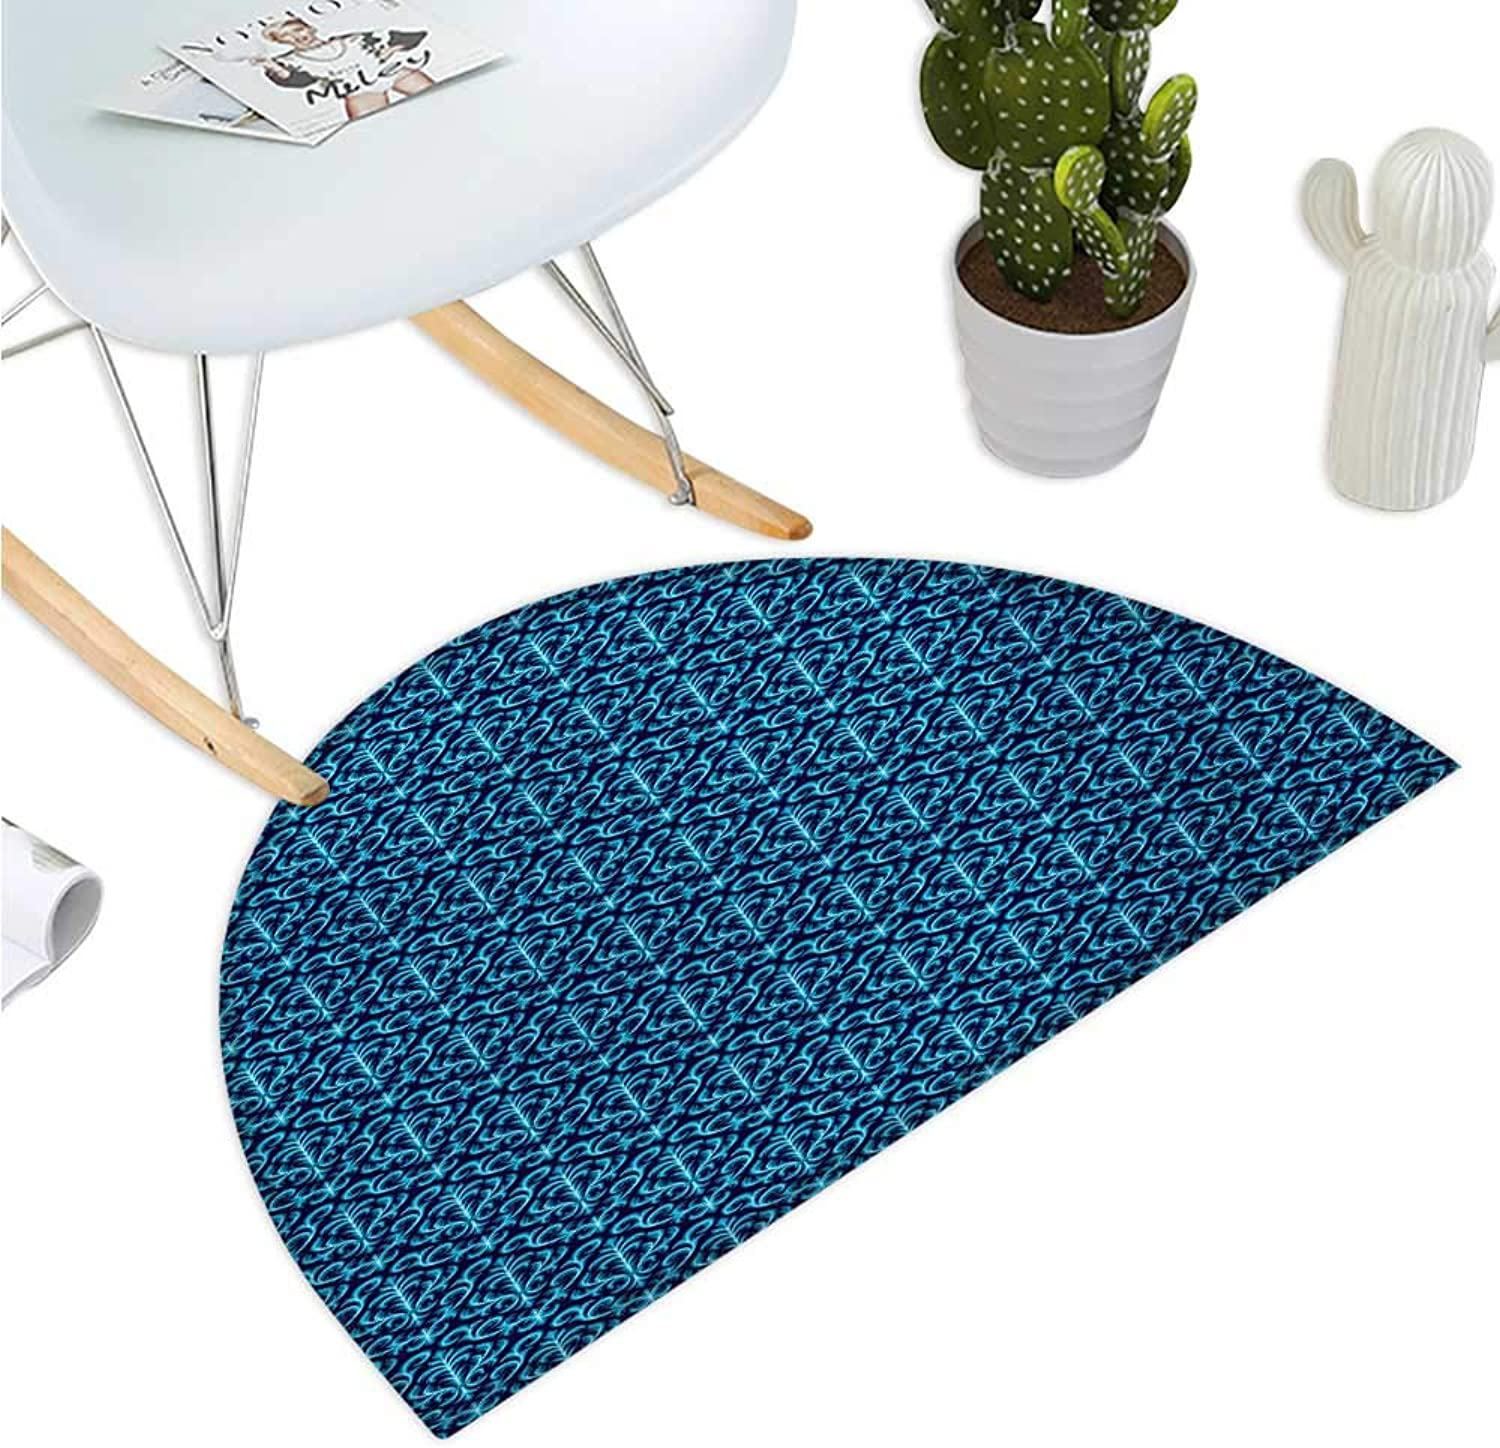 Damask Semicircular Cushion Floral Ornament Various Geometrical Shapes Curved Lines Vibrant color Palette Entry Door Mat H 35.4  xD 53.1  Indigo Sky bluee